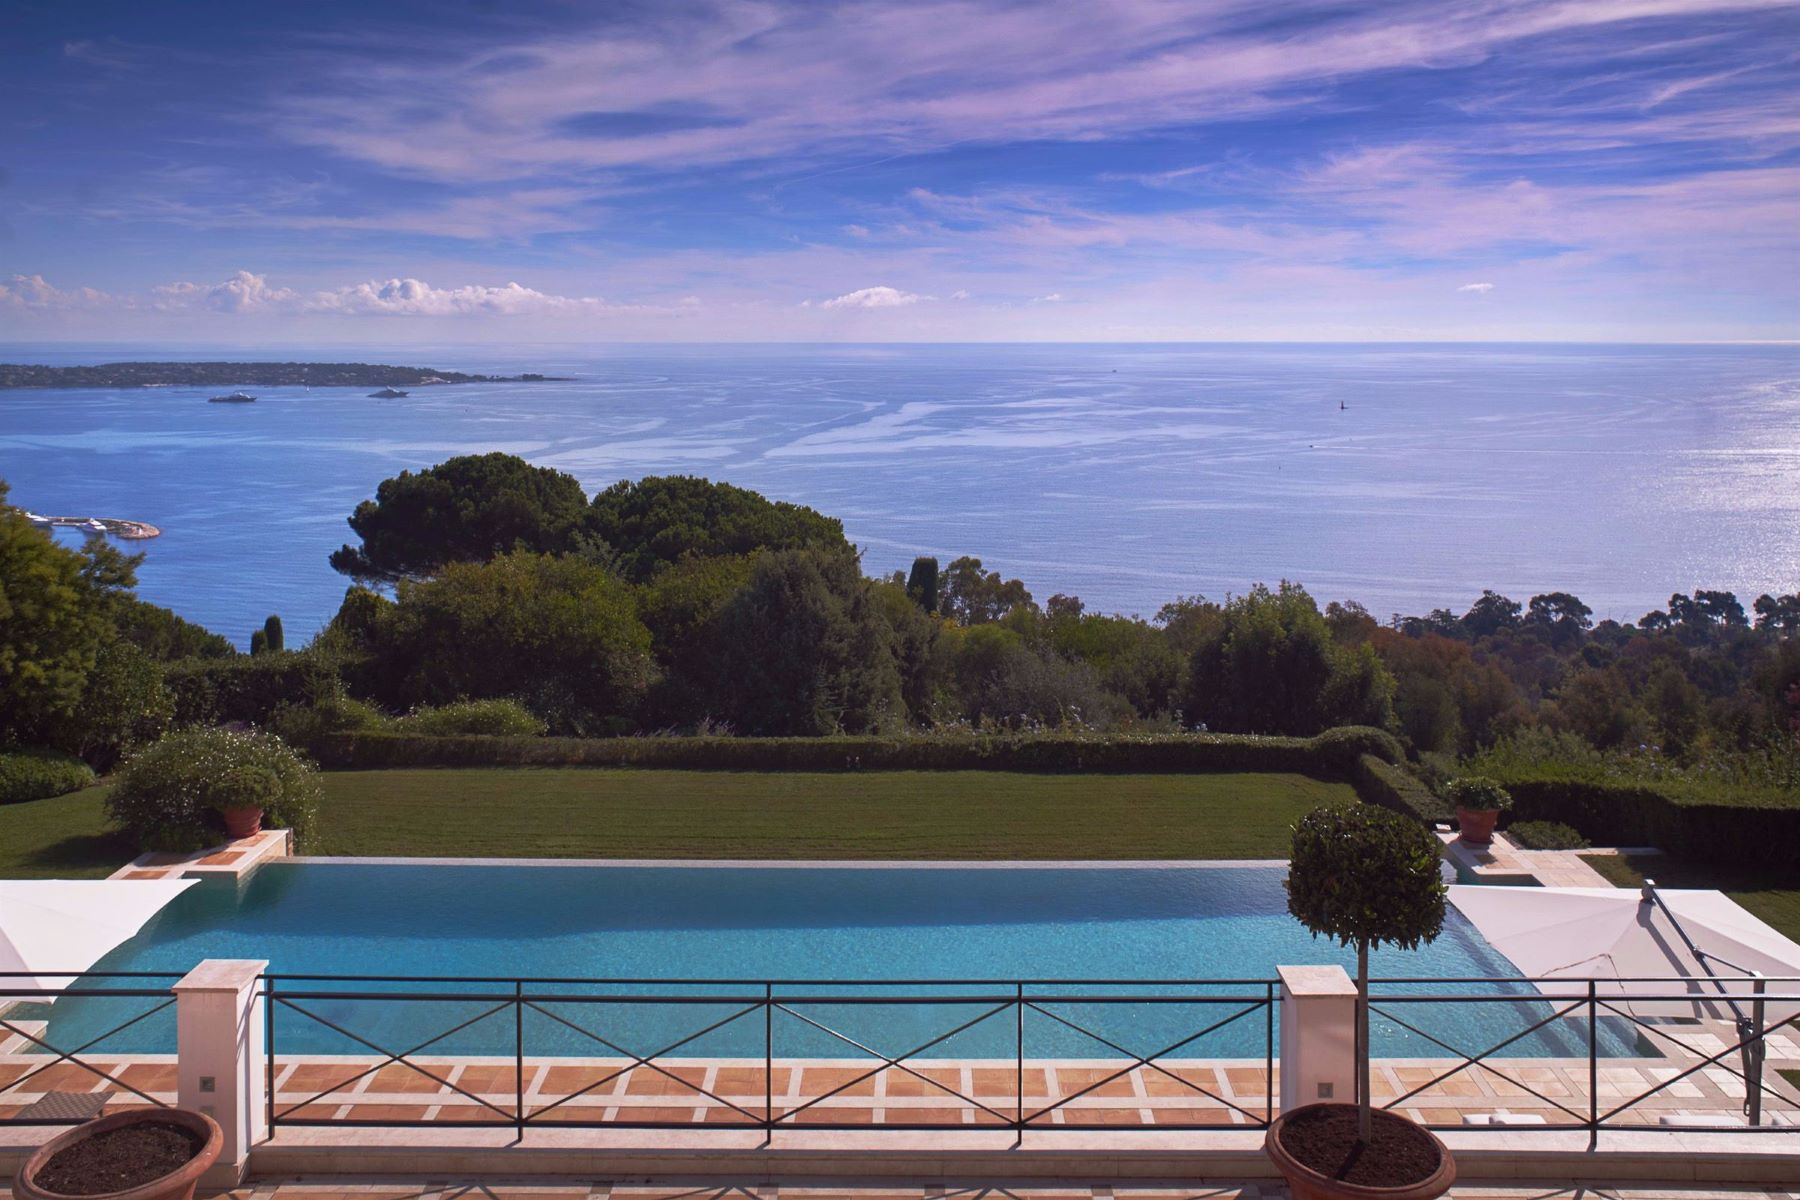 Single Family Home for Sale at Classic Paladin property for sale in Super Cannes Cannes, Provence-Alpes-Cote D'Azur 06400 France